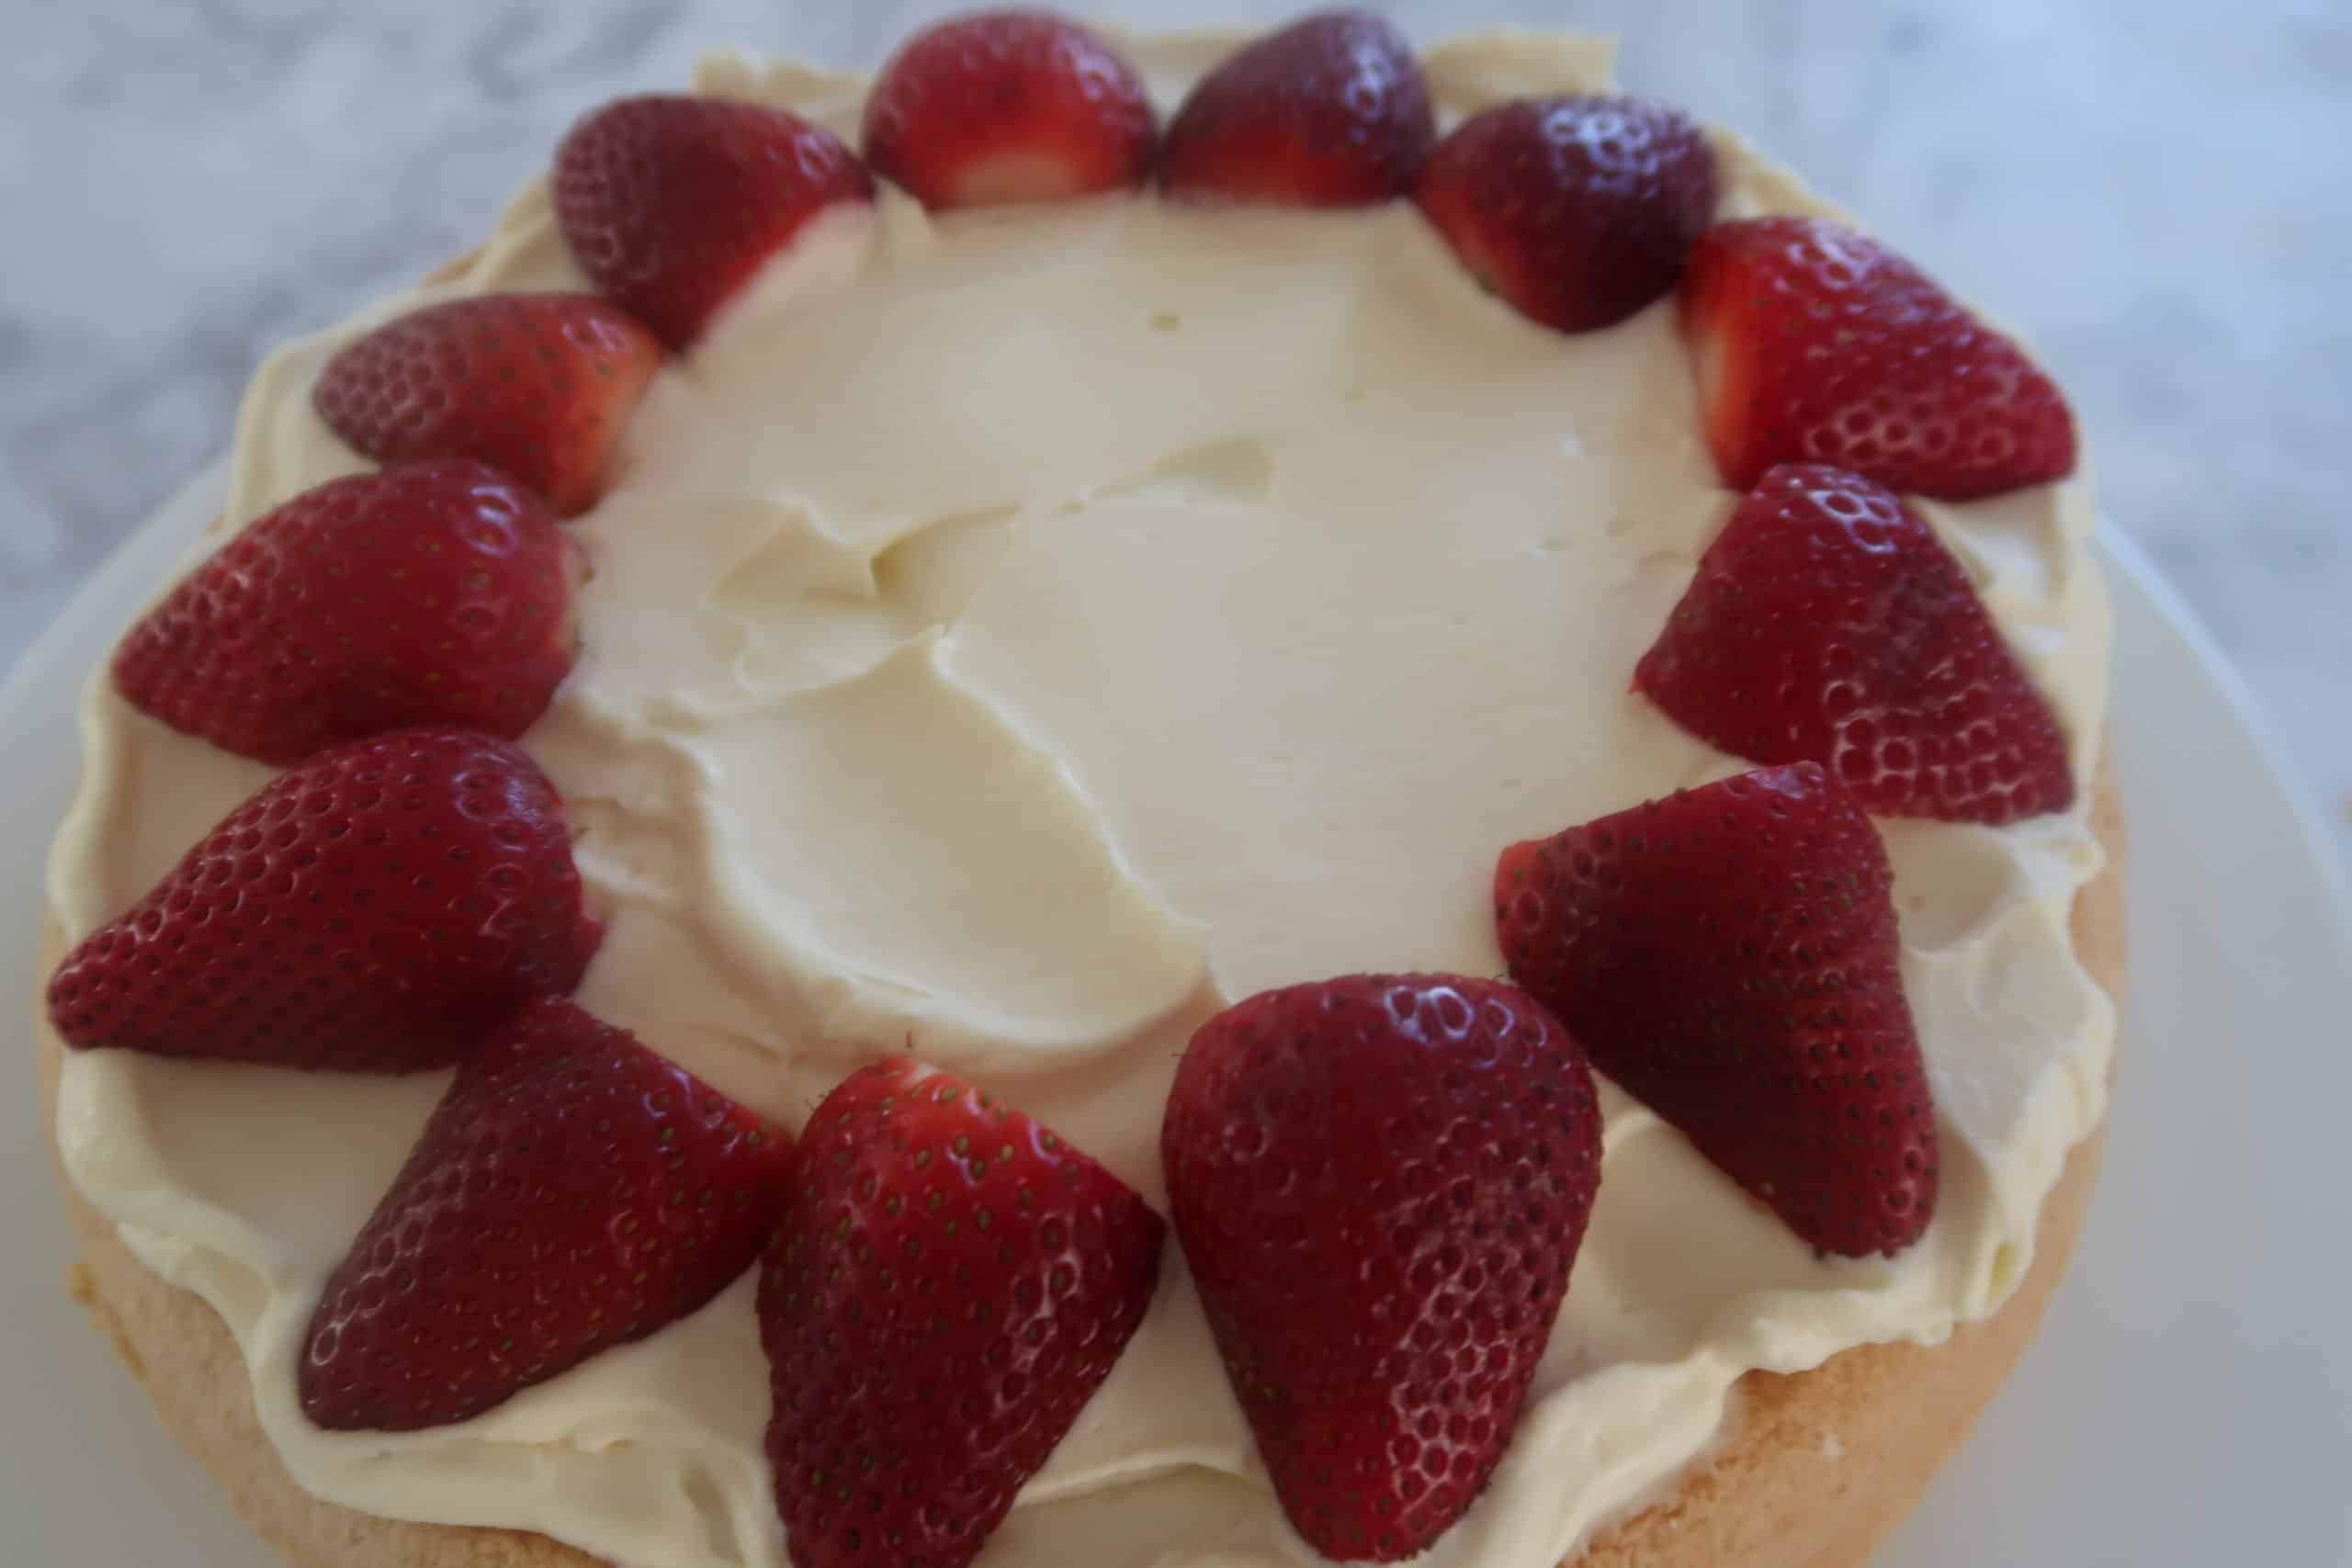 strawberry sponge cake spread with cream and strawberries starting to be placed onto cream